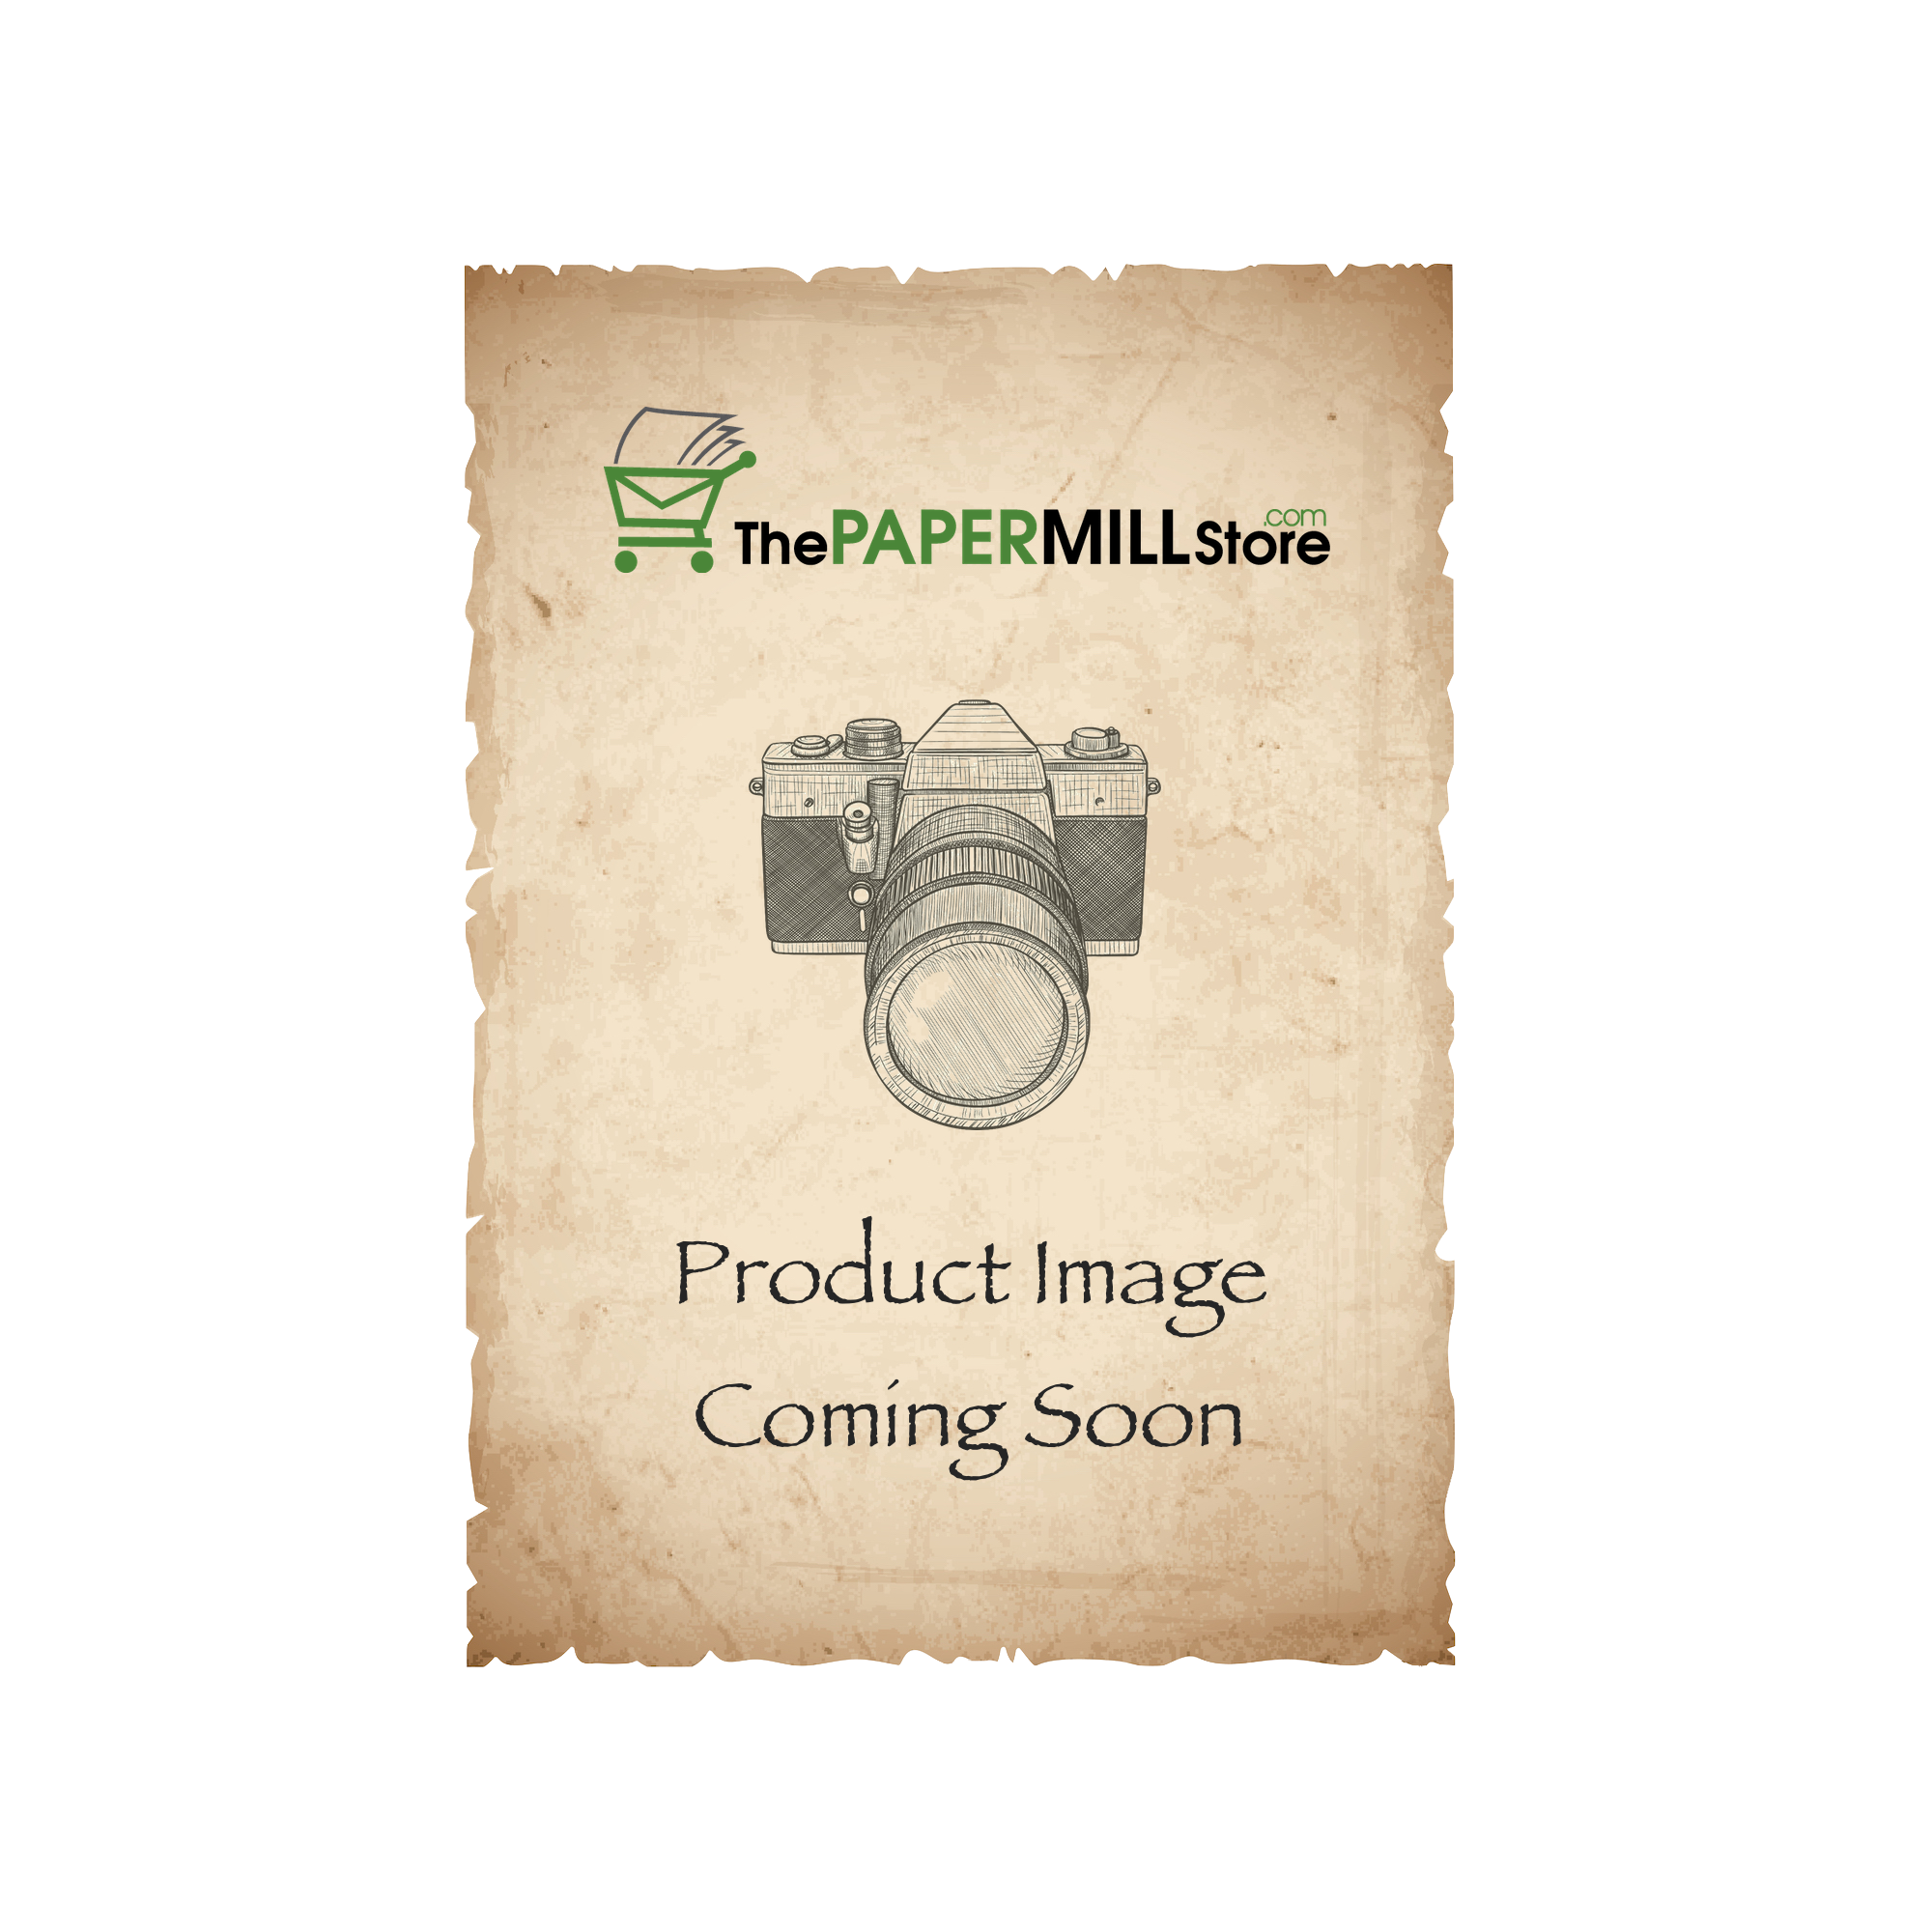 Loop Inxwell i-Tone Eco White Paper - 13 x 19 in 80 lb Text Vellum  100% Recycled 500 per Ream